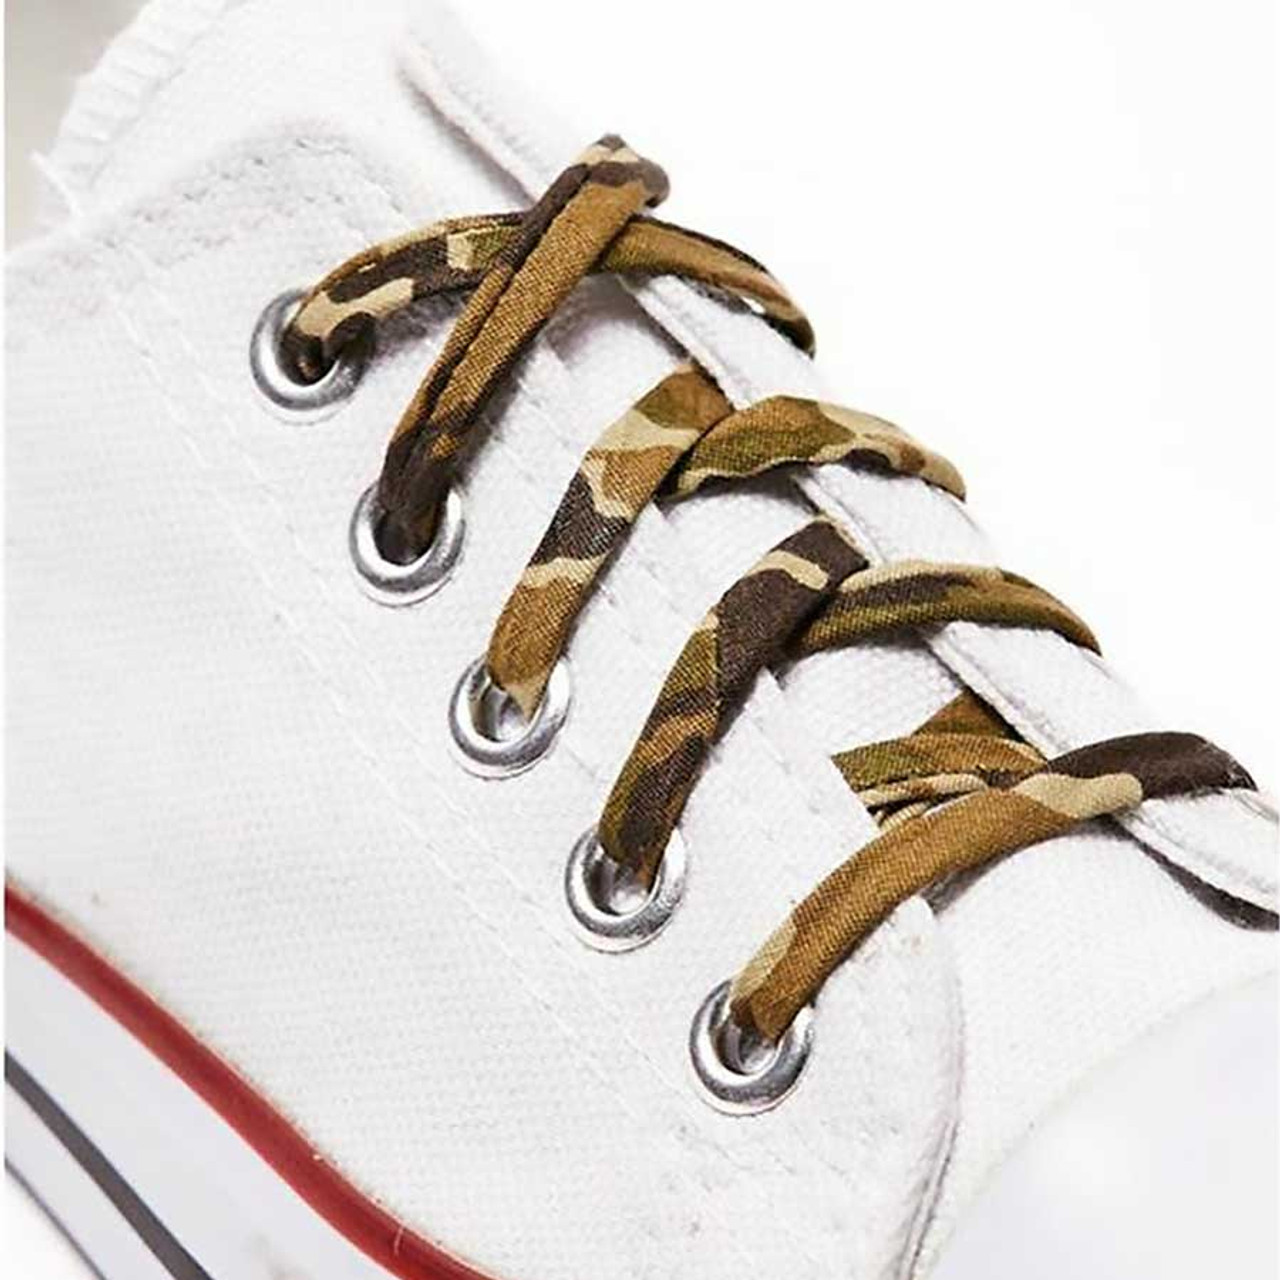 Camouflage Shoelaces   Buy Now Online